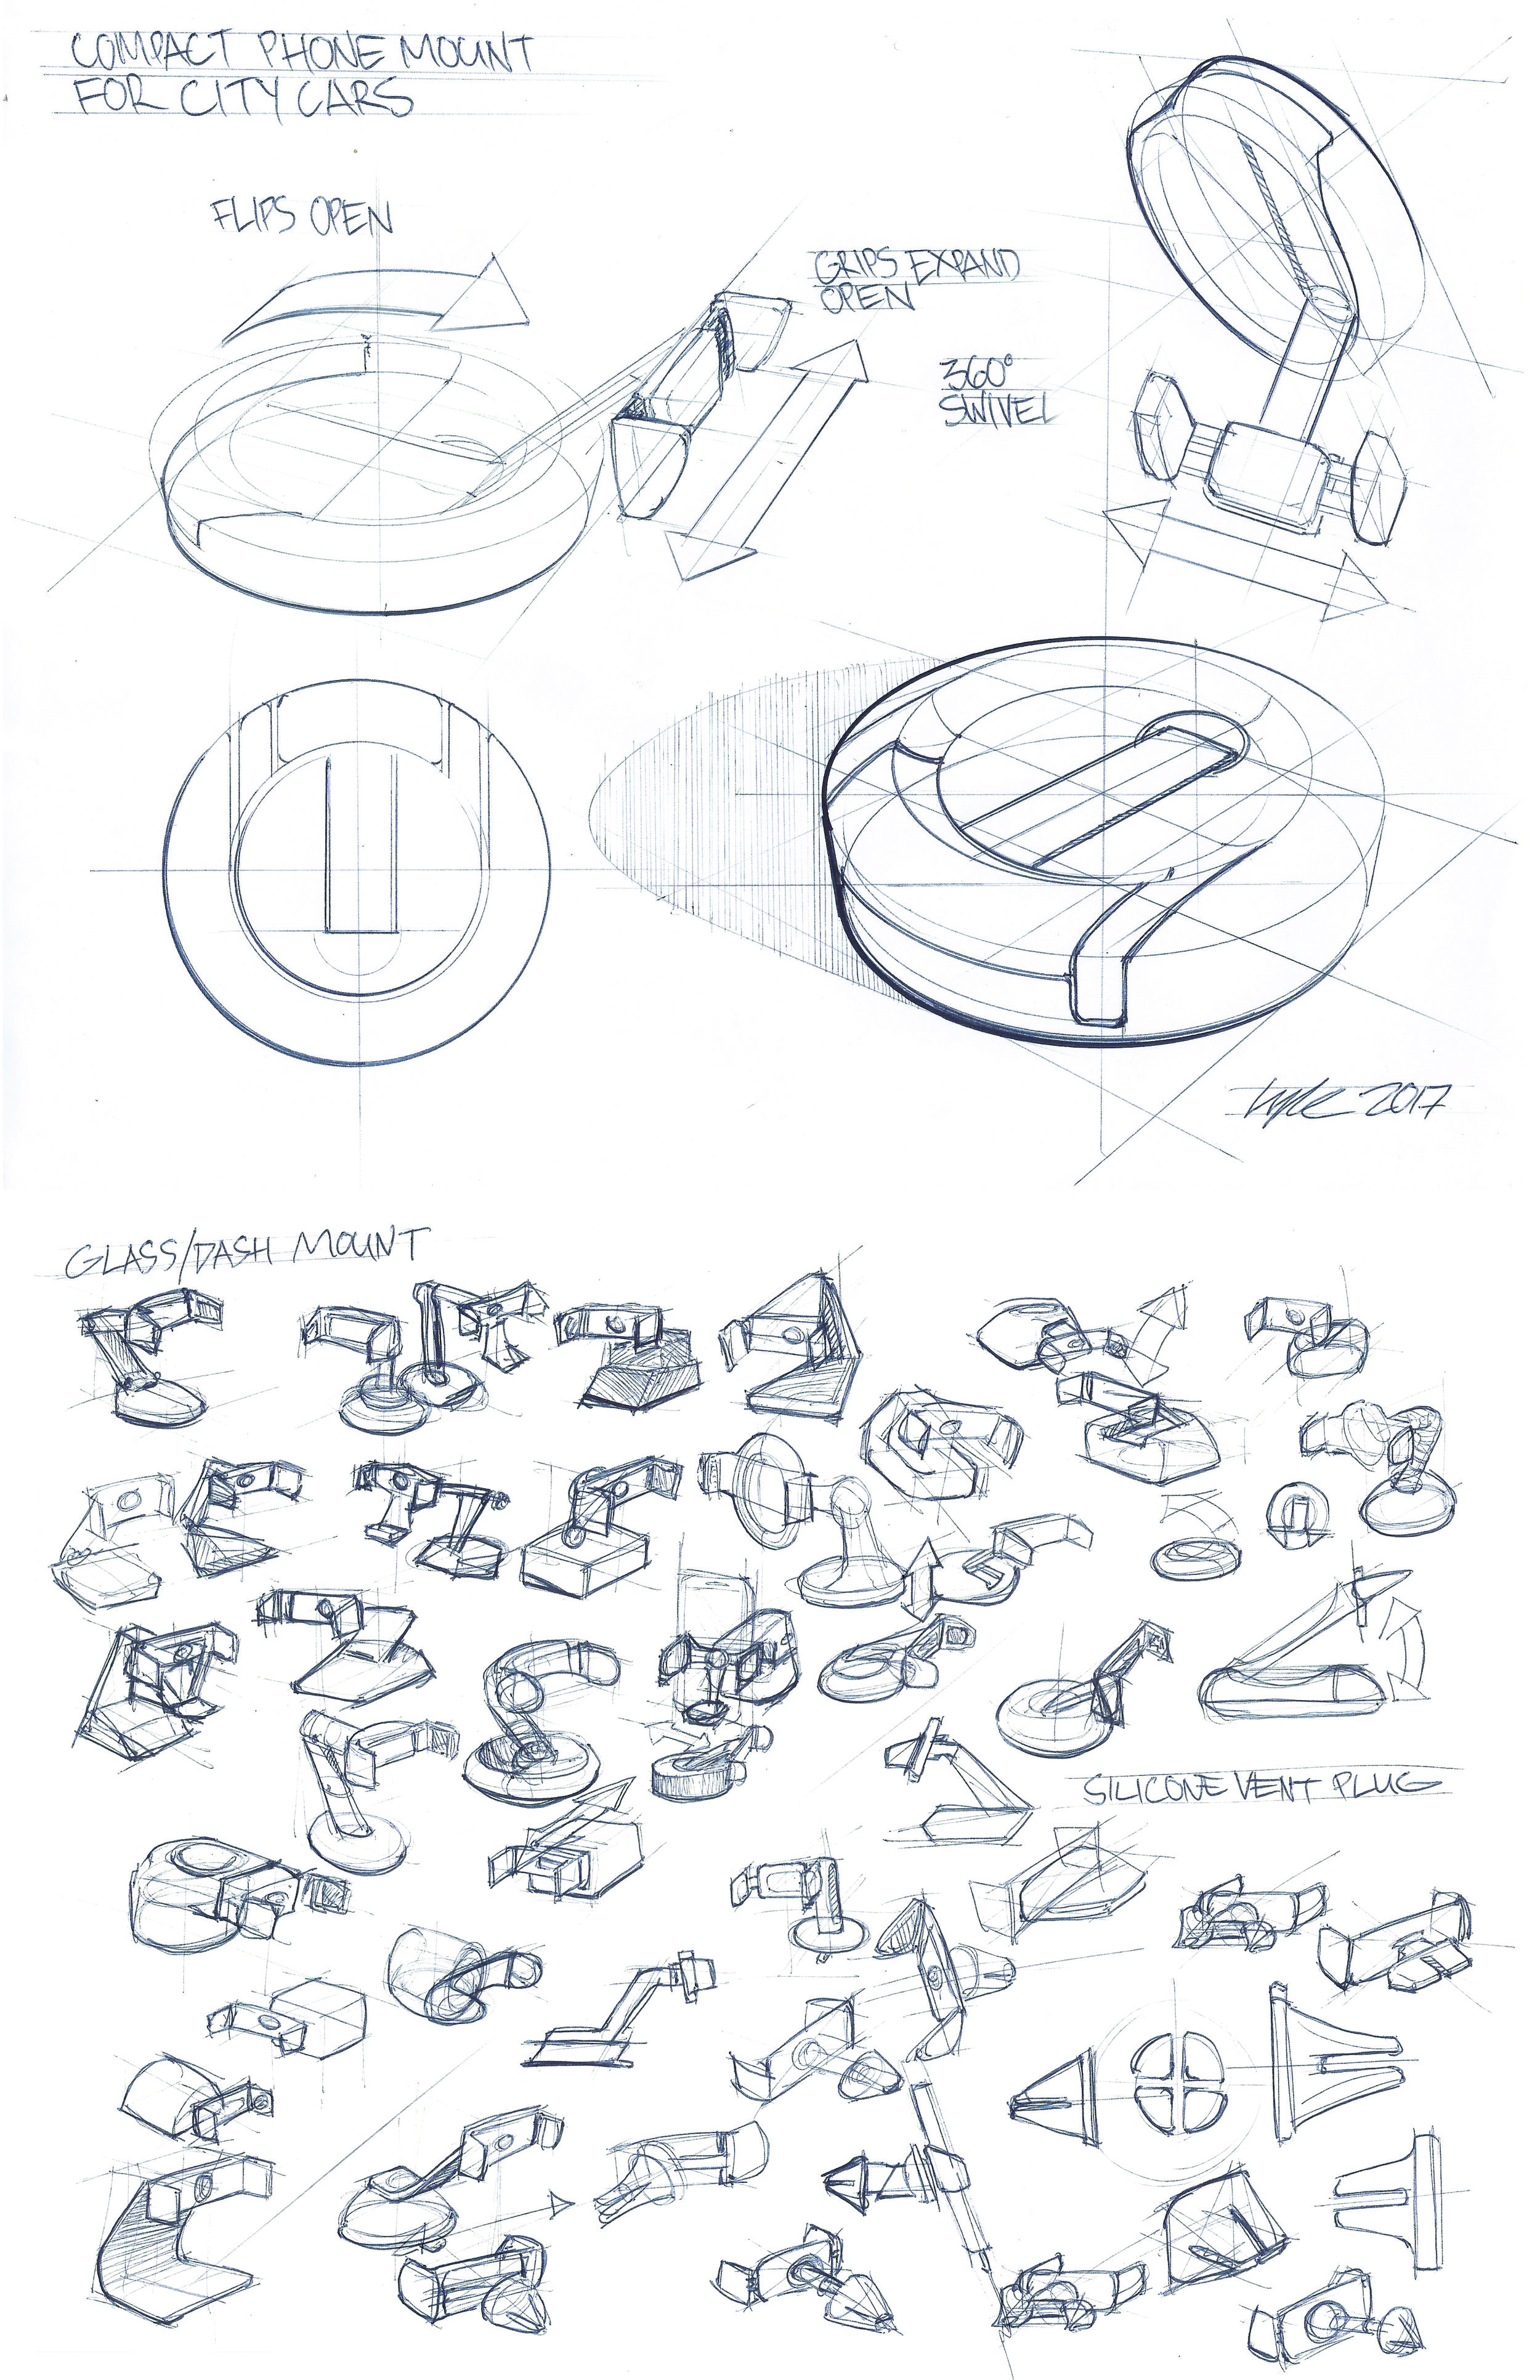 Quick Ideation on a Compact Phone Mount for City Cars - Ballpoint Pen on Paper